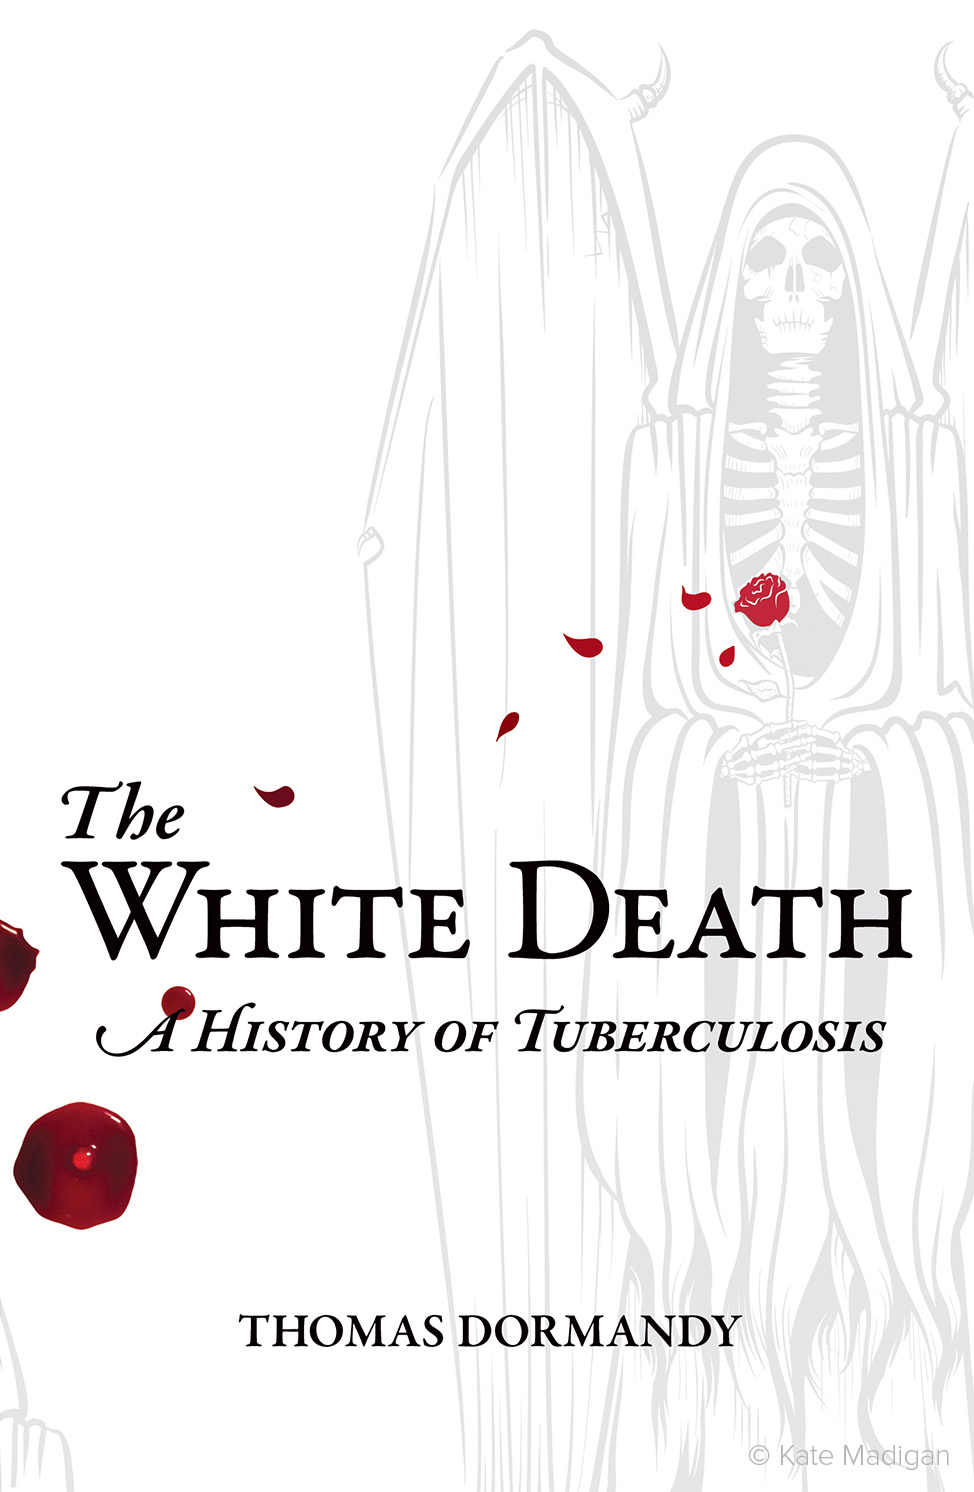 Imagined, alternative, and wholly unofficial cover for Thomas Dormandy's seminal work on the history of tuberculosis, 'The White Death'. The cover illustration features the angel of death holding a rose, the petals of which are falling and transforming into bloodstains  .     Illustration copyright Kate Madigan.